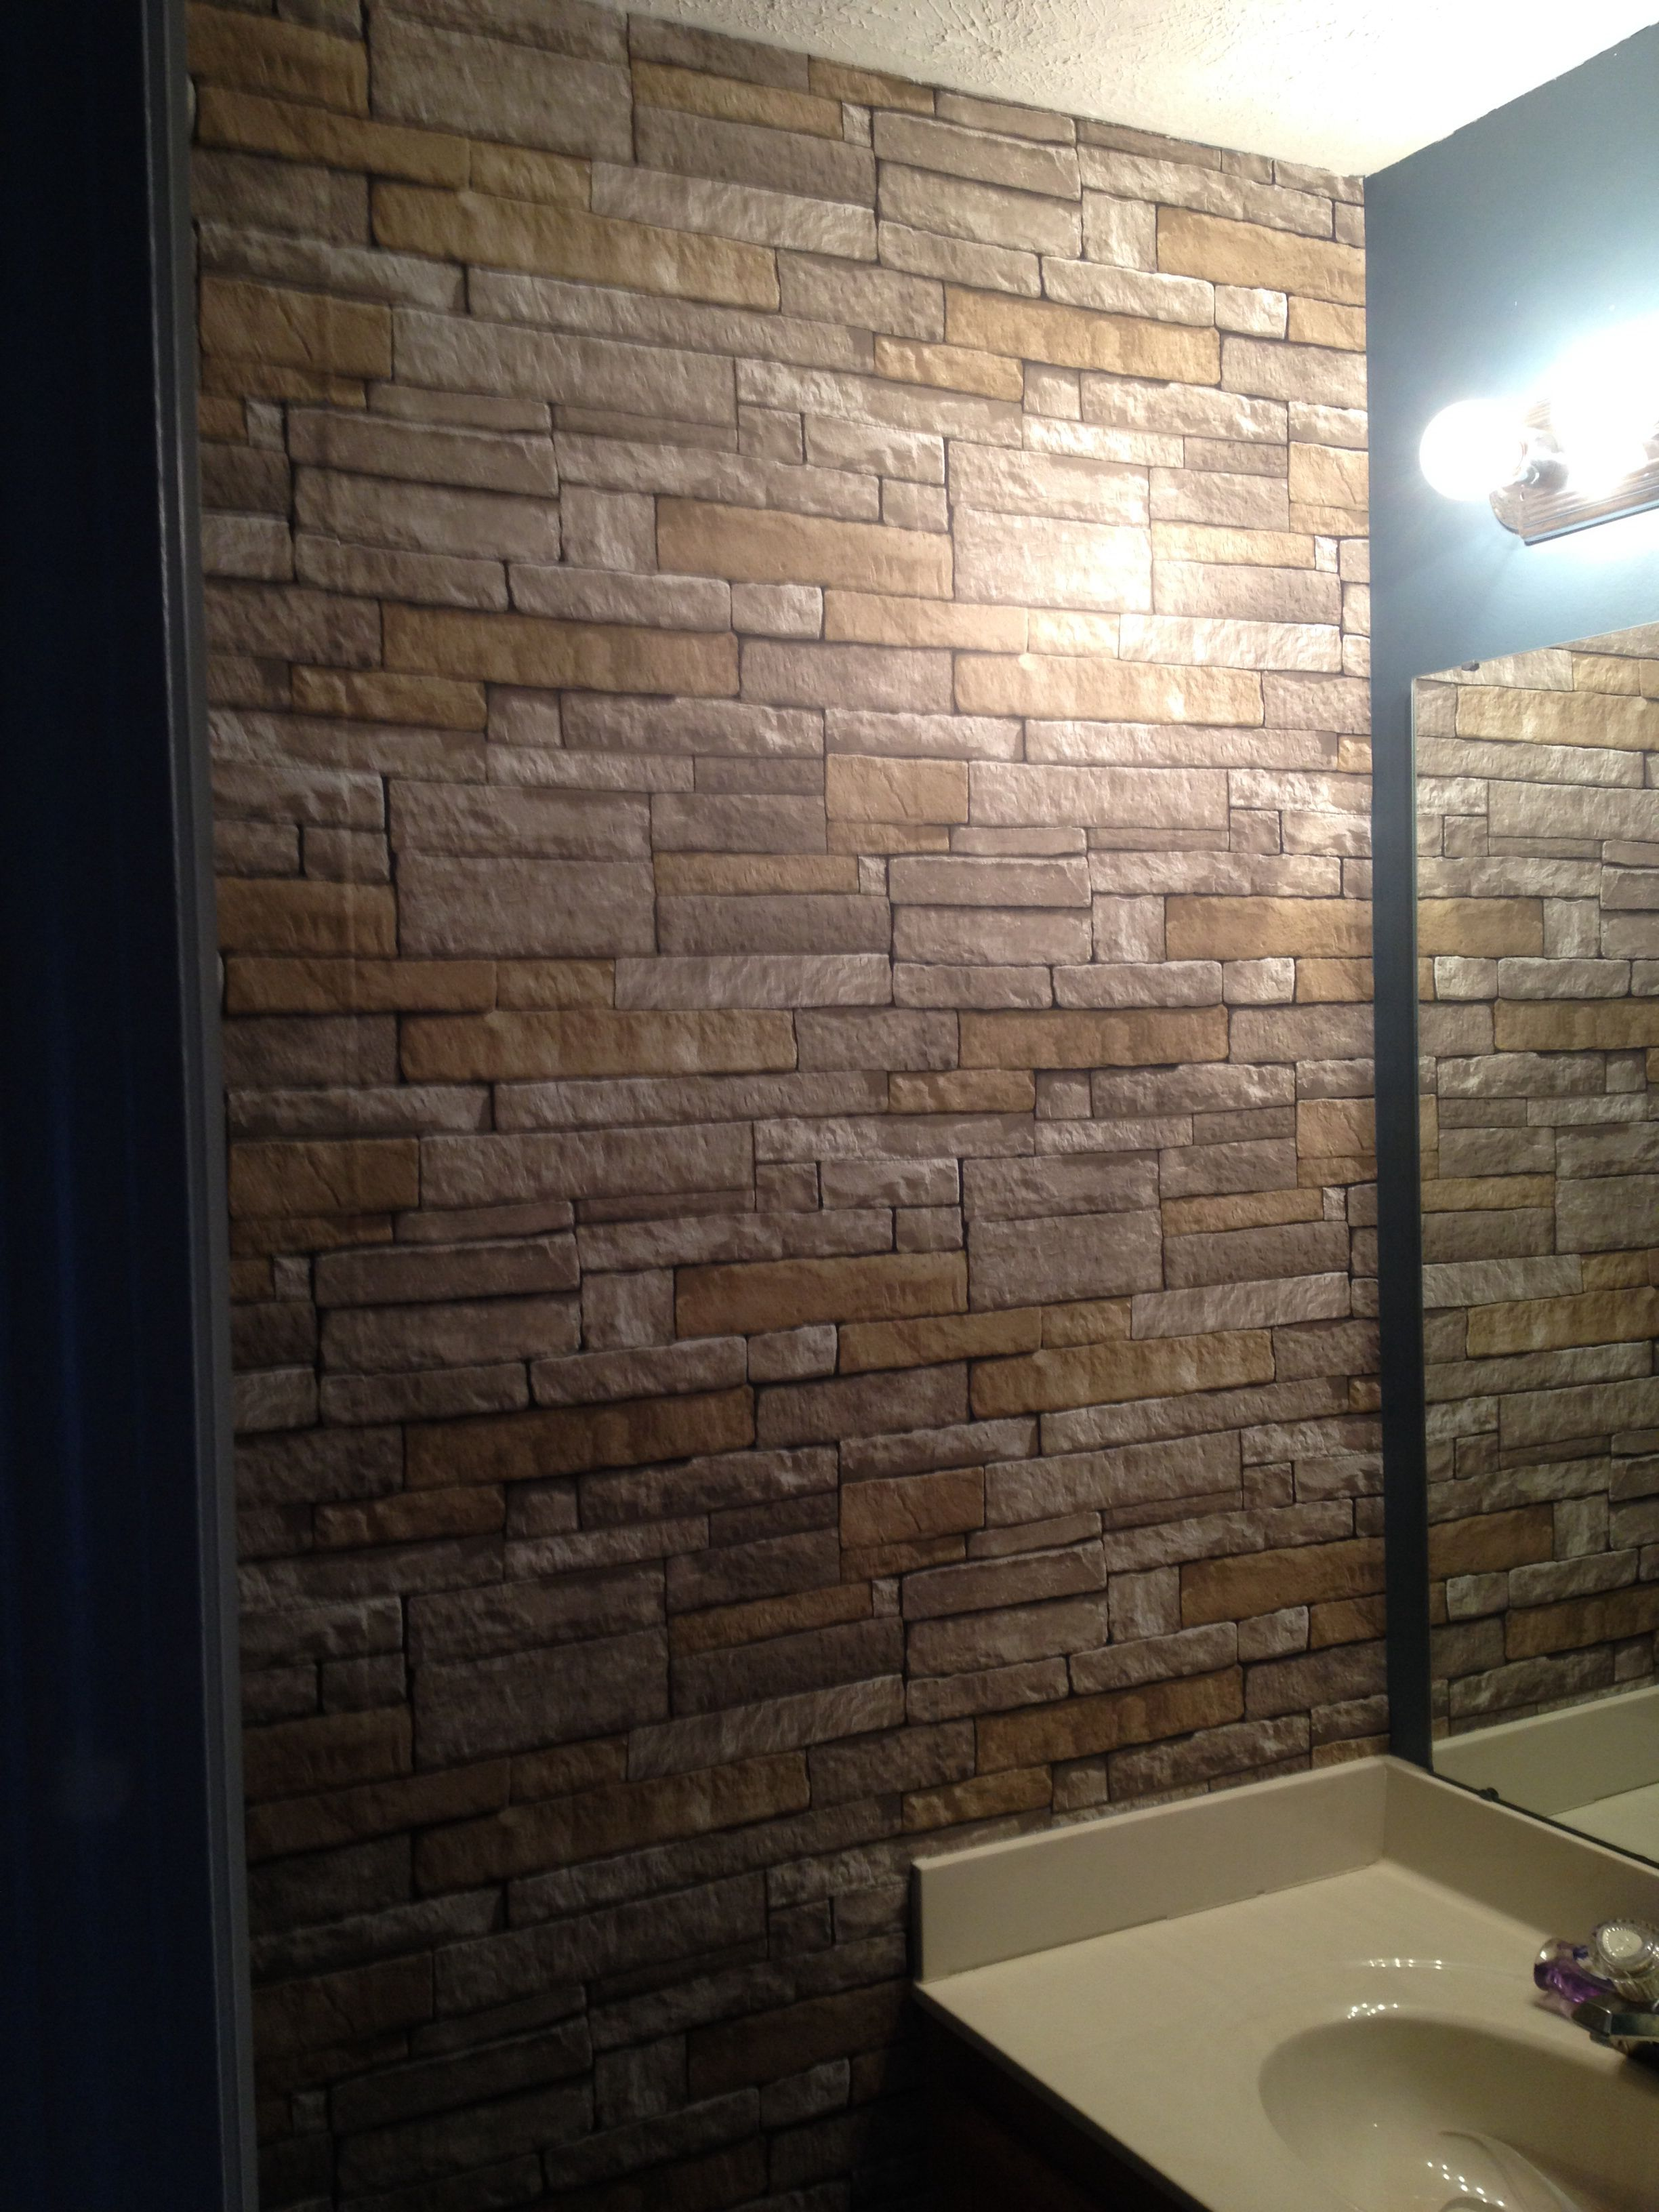 brick wallpaper 32 for about 60 sq ft; allen + roth lowes